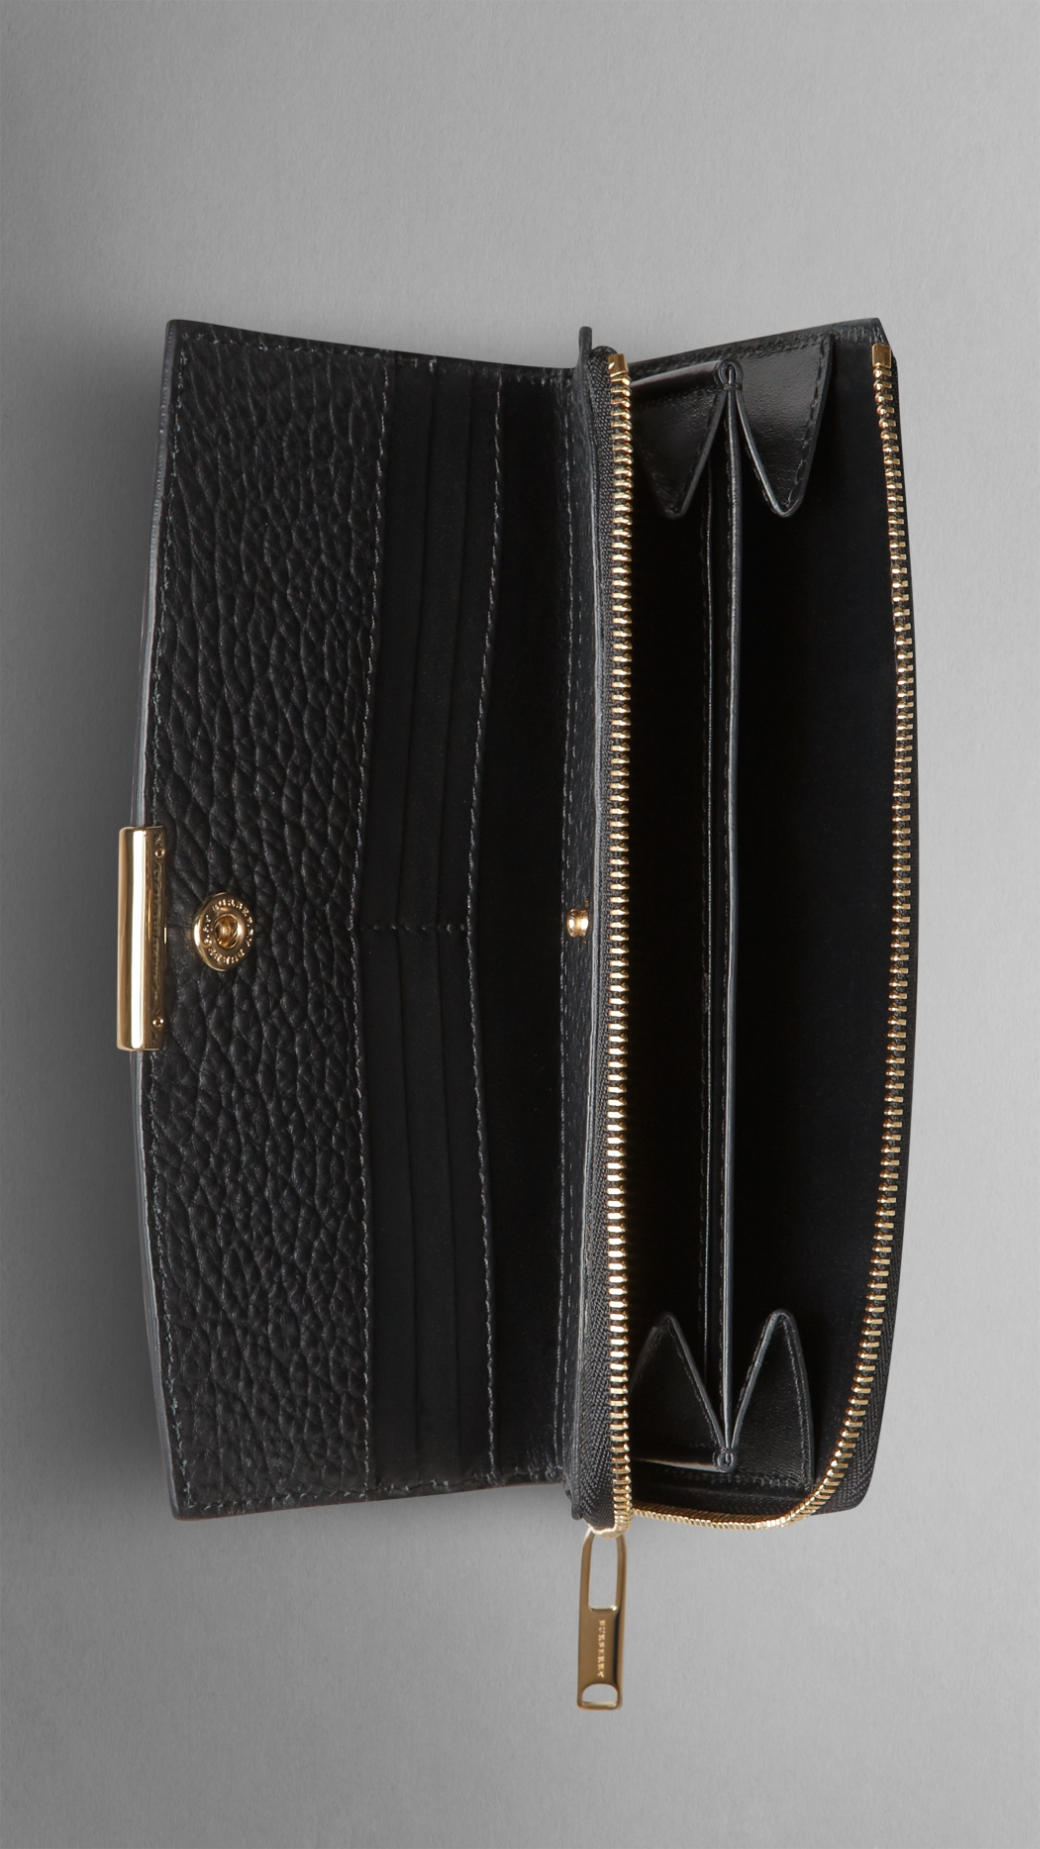 Burberry Embossed Check Leather Ziparound Wallet In Black